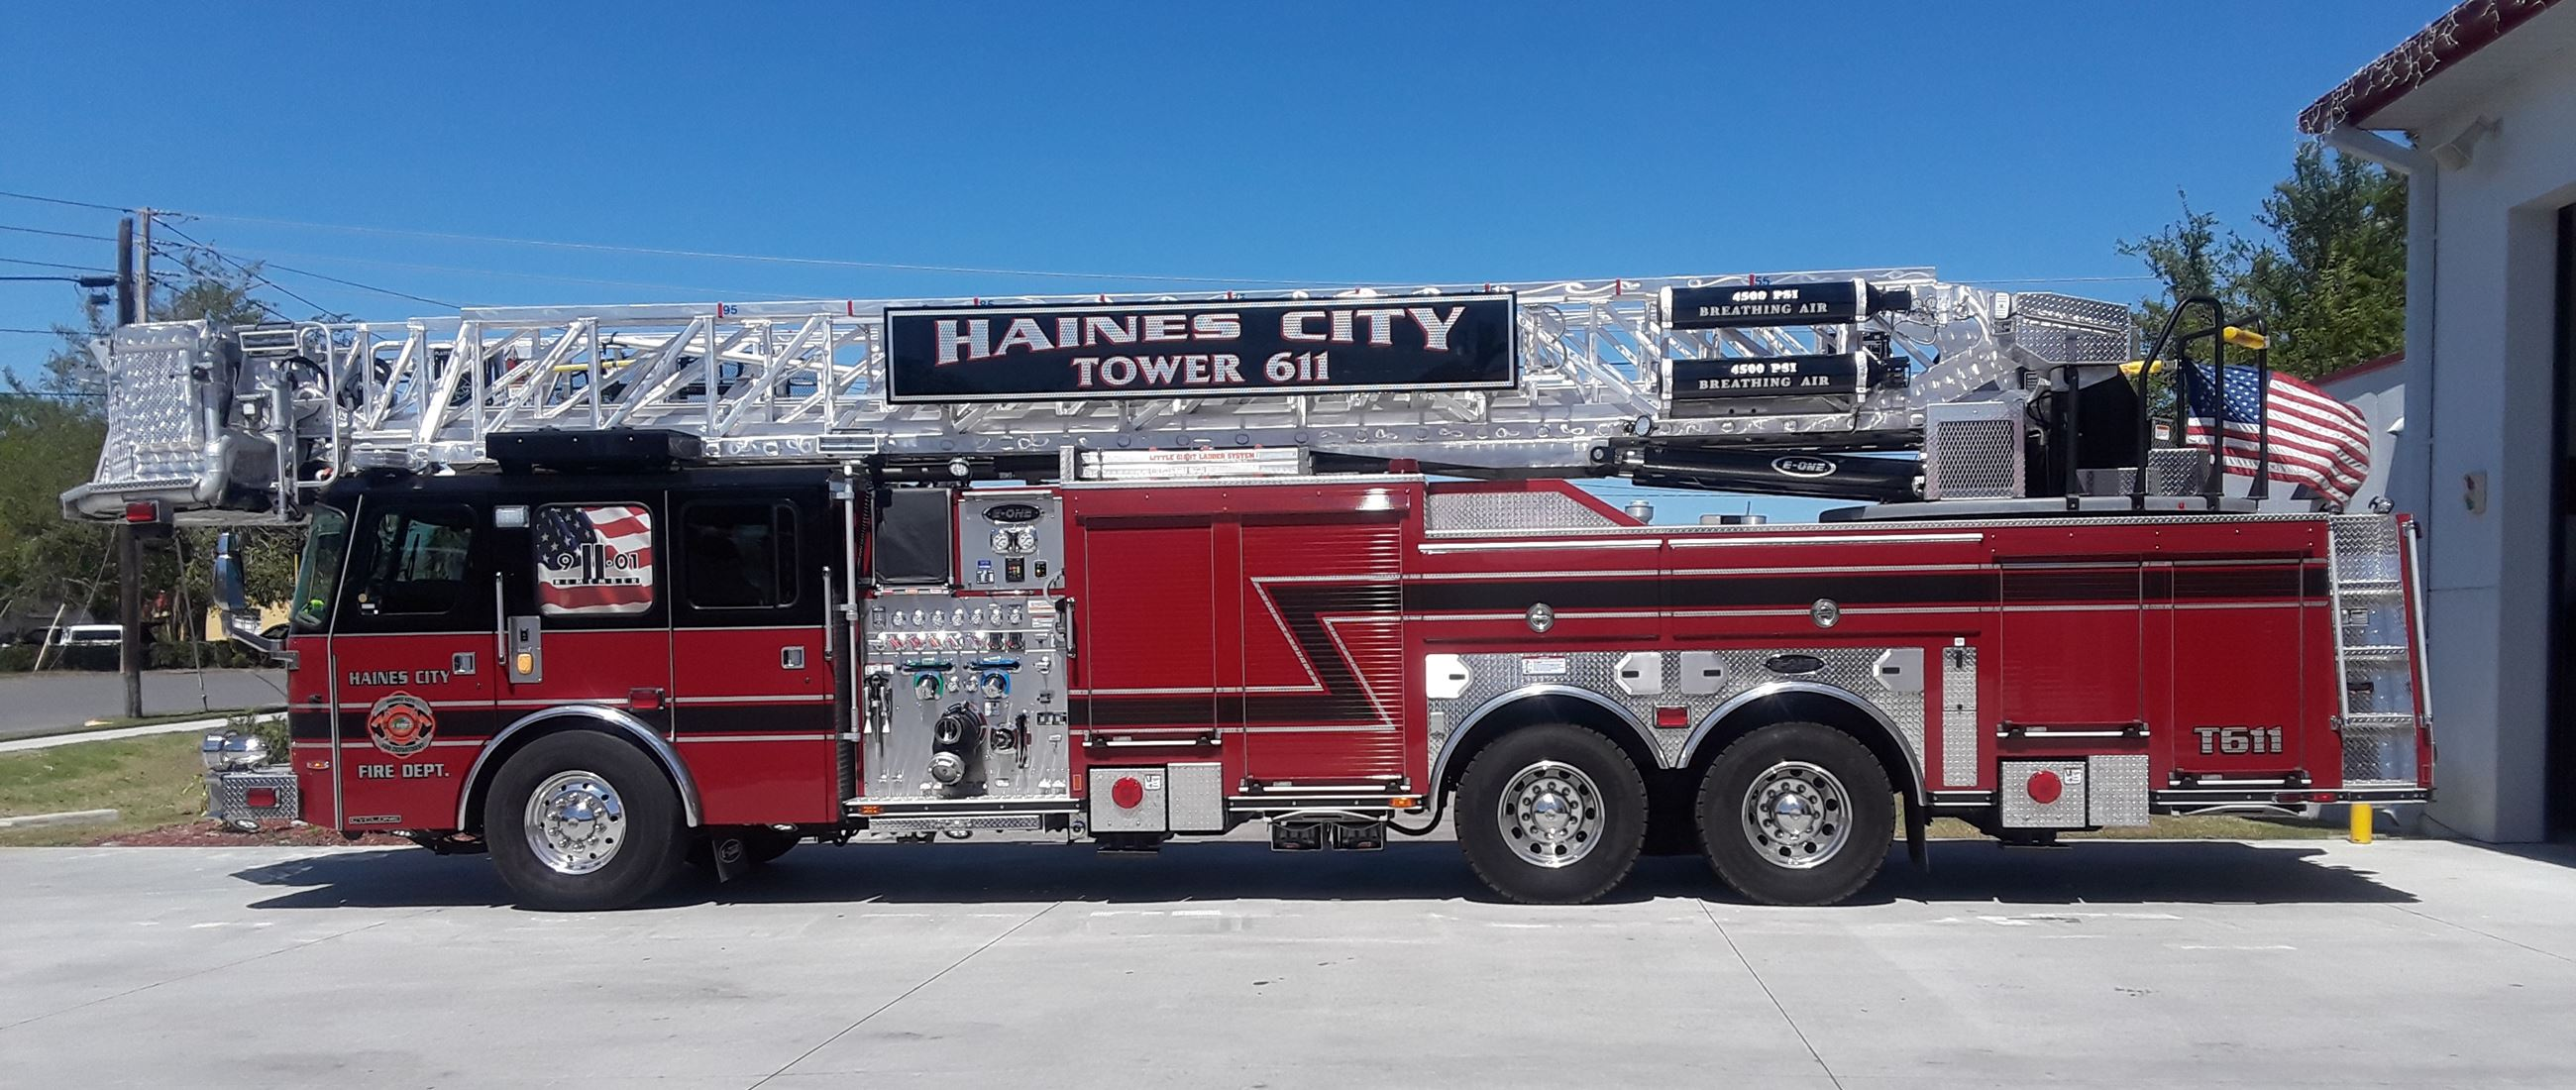 Tower 611